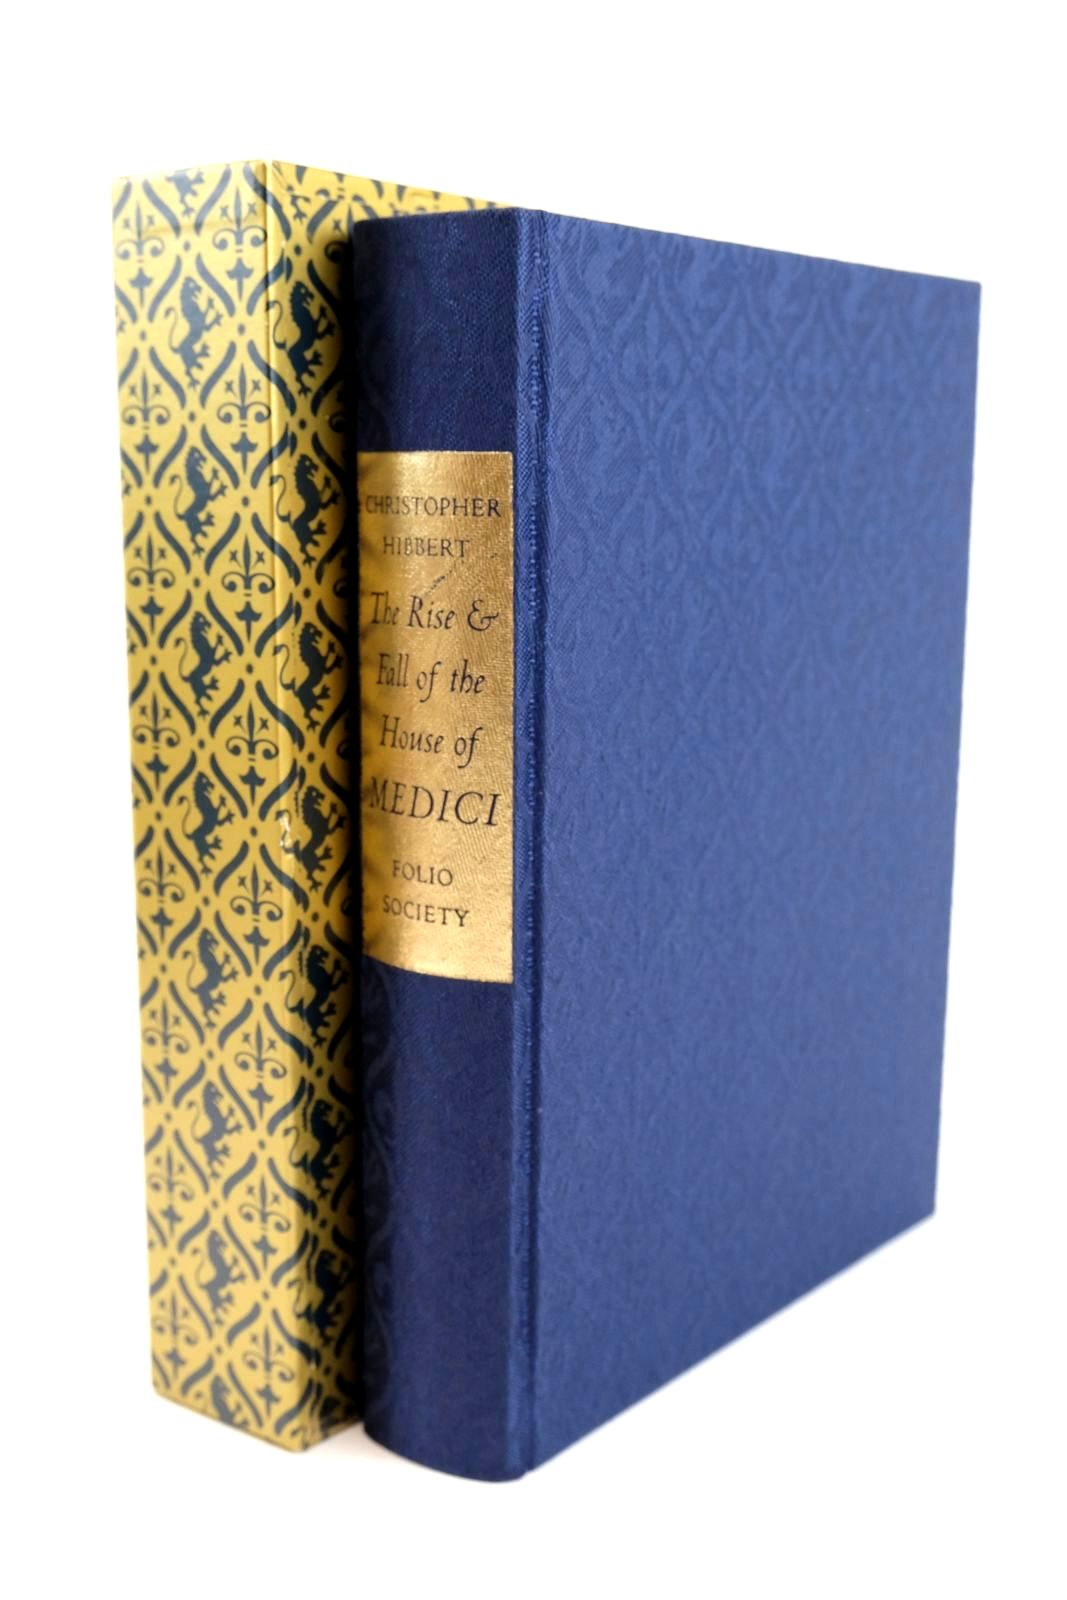 Photo of THE RISE AND FALL OF THE HOUSE OF MEDICI written by Hibbert, Christopher Acton, Harold published by Folio Society (STOCK CODE: 1318939)  for sale by Stella & Rose's Books